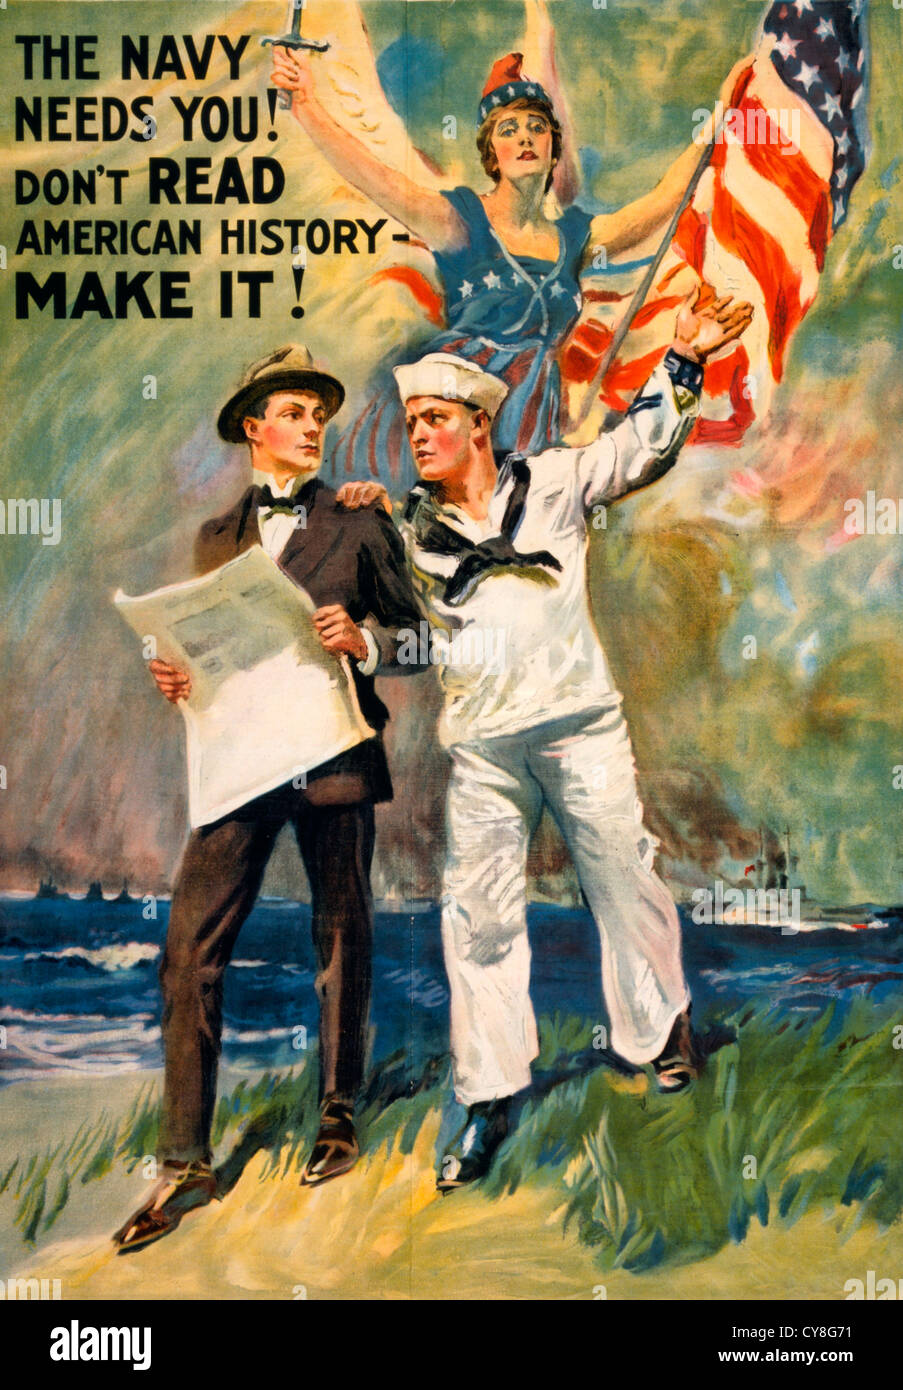 The Navy needs you! Don't read American history - make it! WWI Poster showing a sailor taking a man in a suit - Stock Image